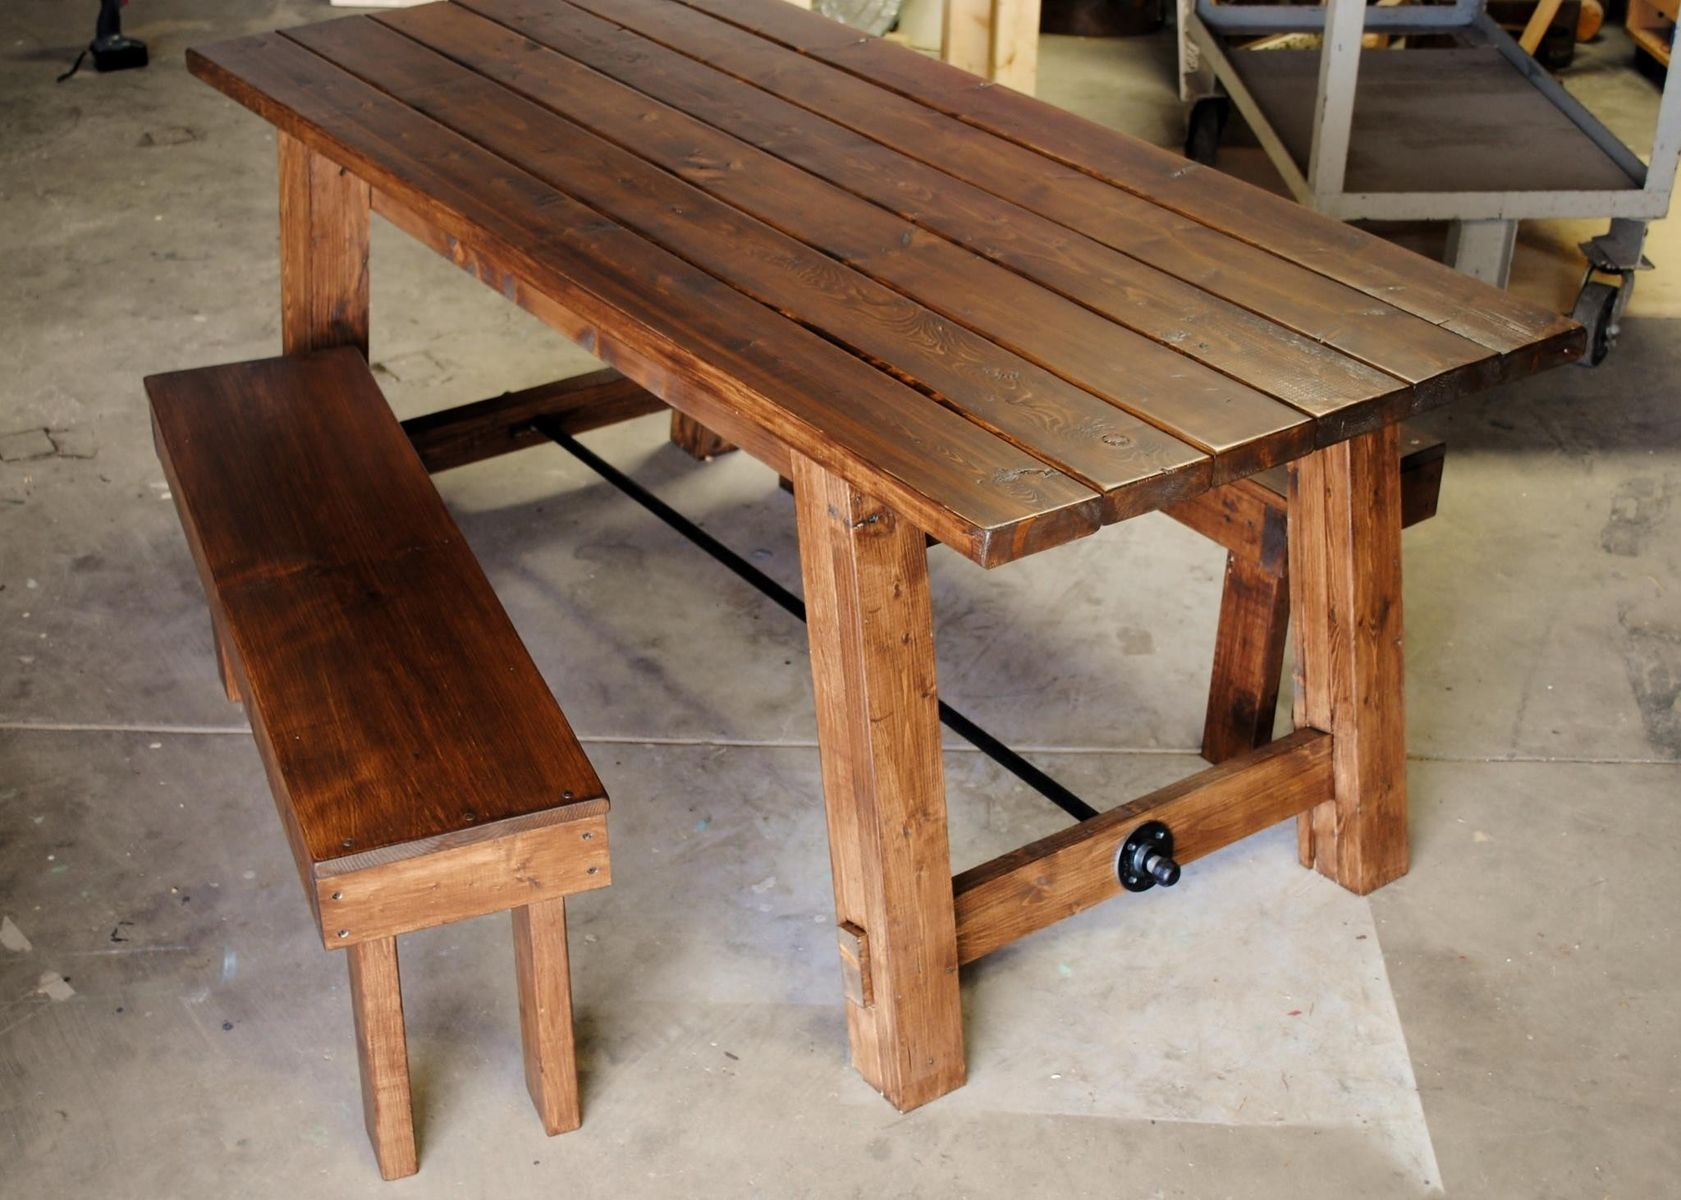 Hand Made Farmhouse Table by Sb Designs | CustomMade.com